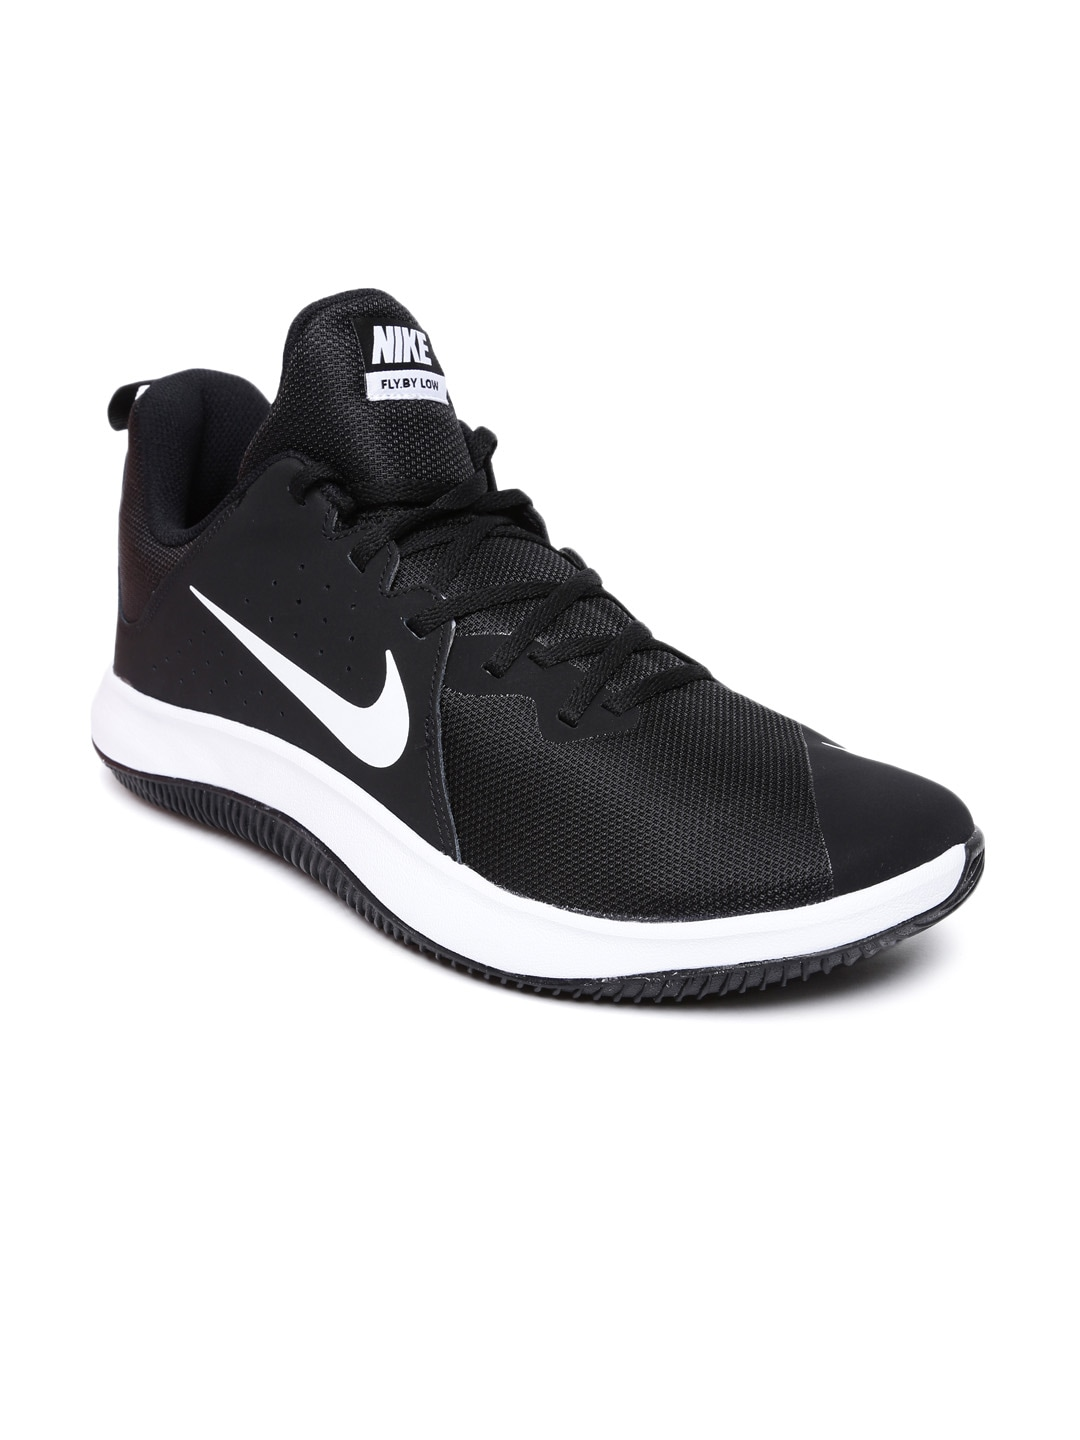 e92128e21495 Nike Shoes - Buy Nike Shoes for Men